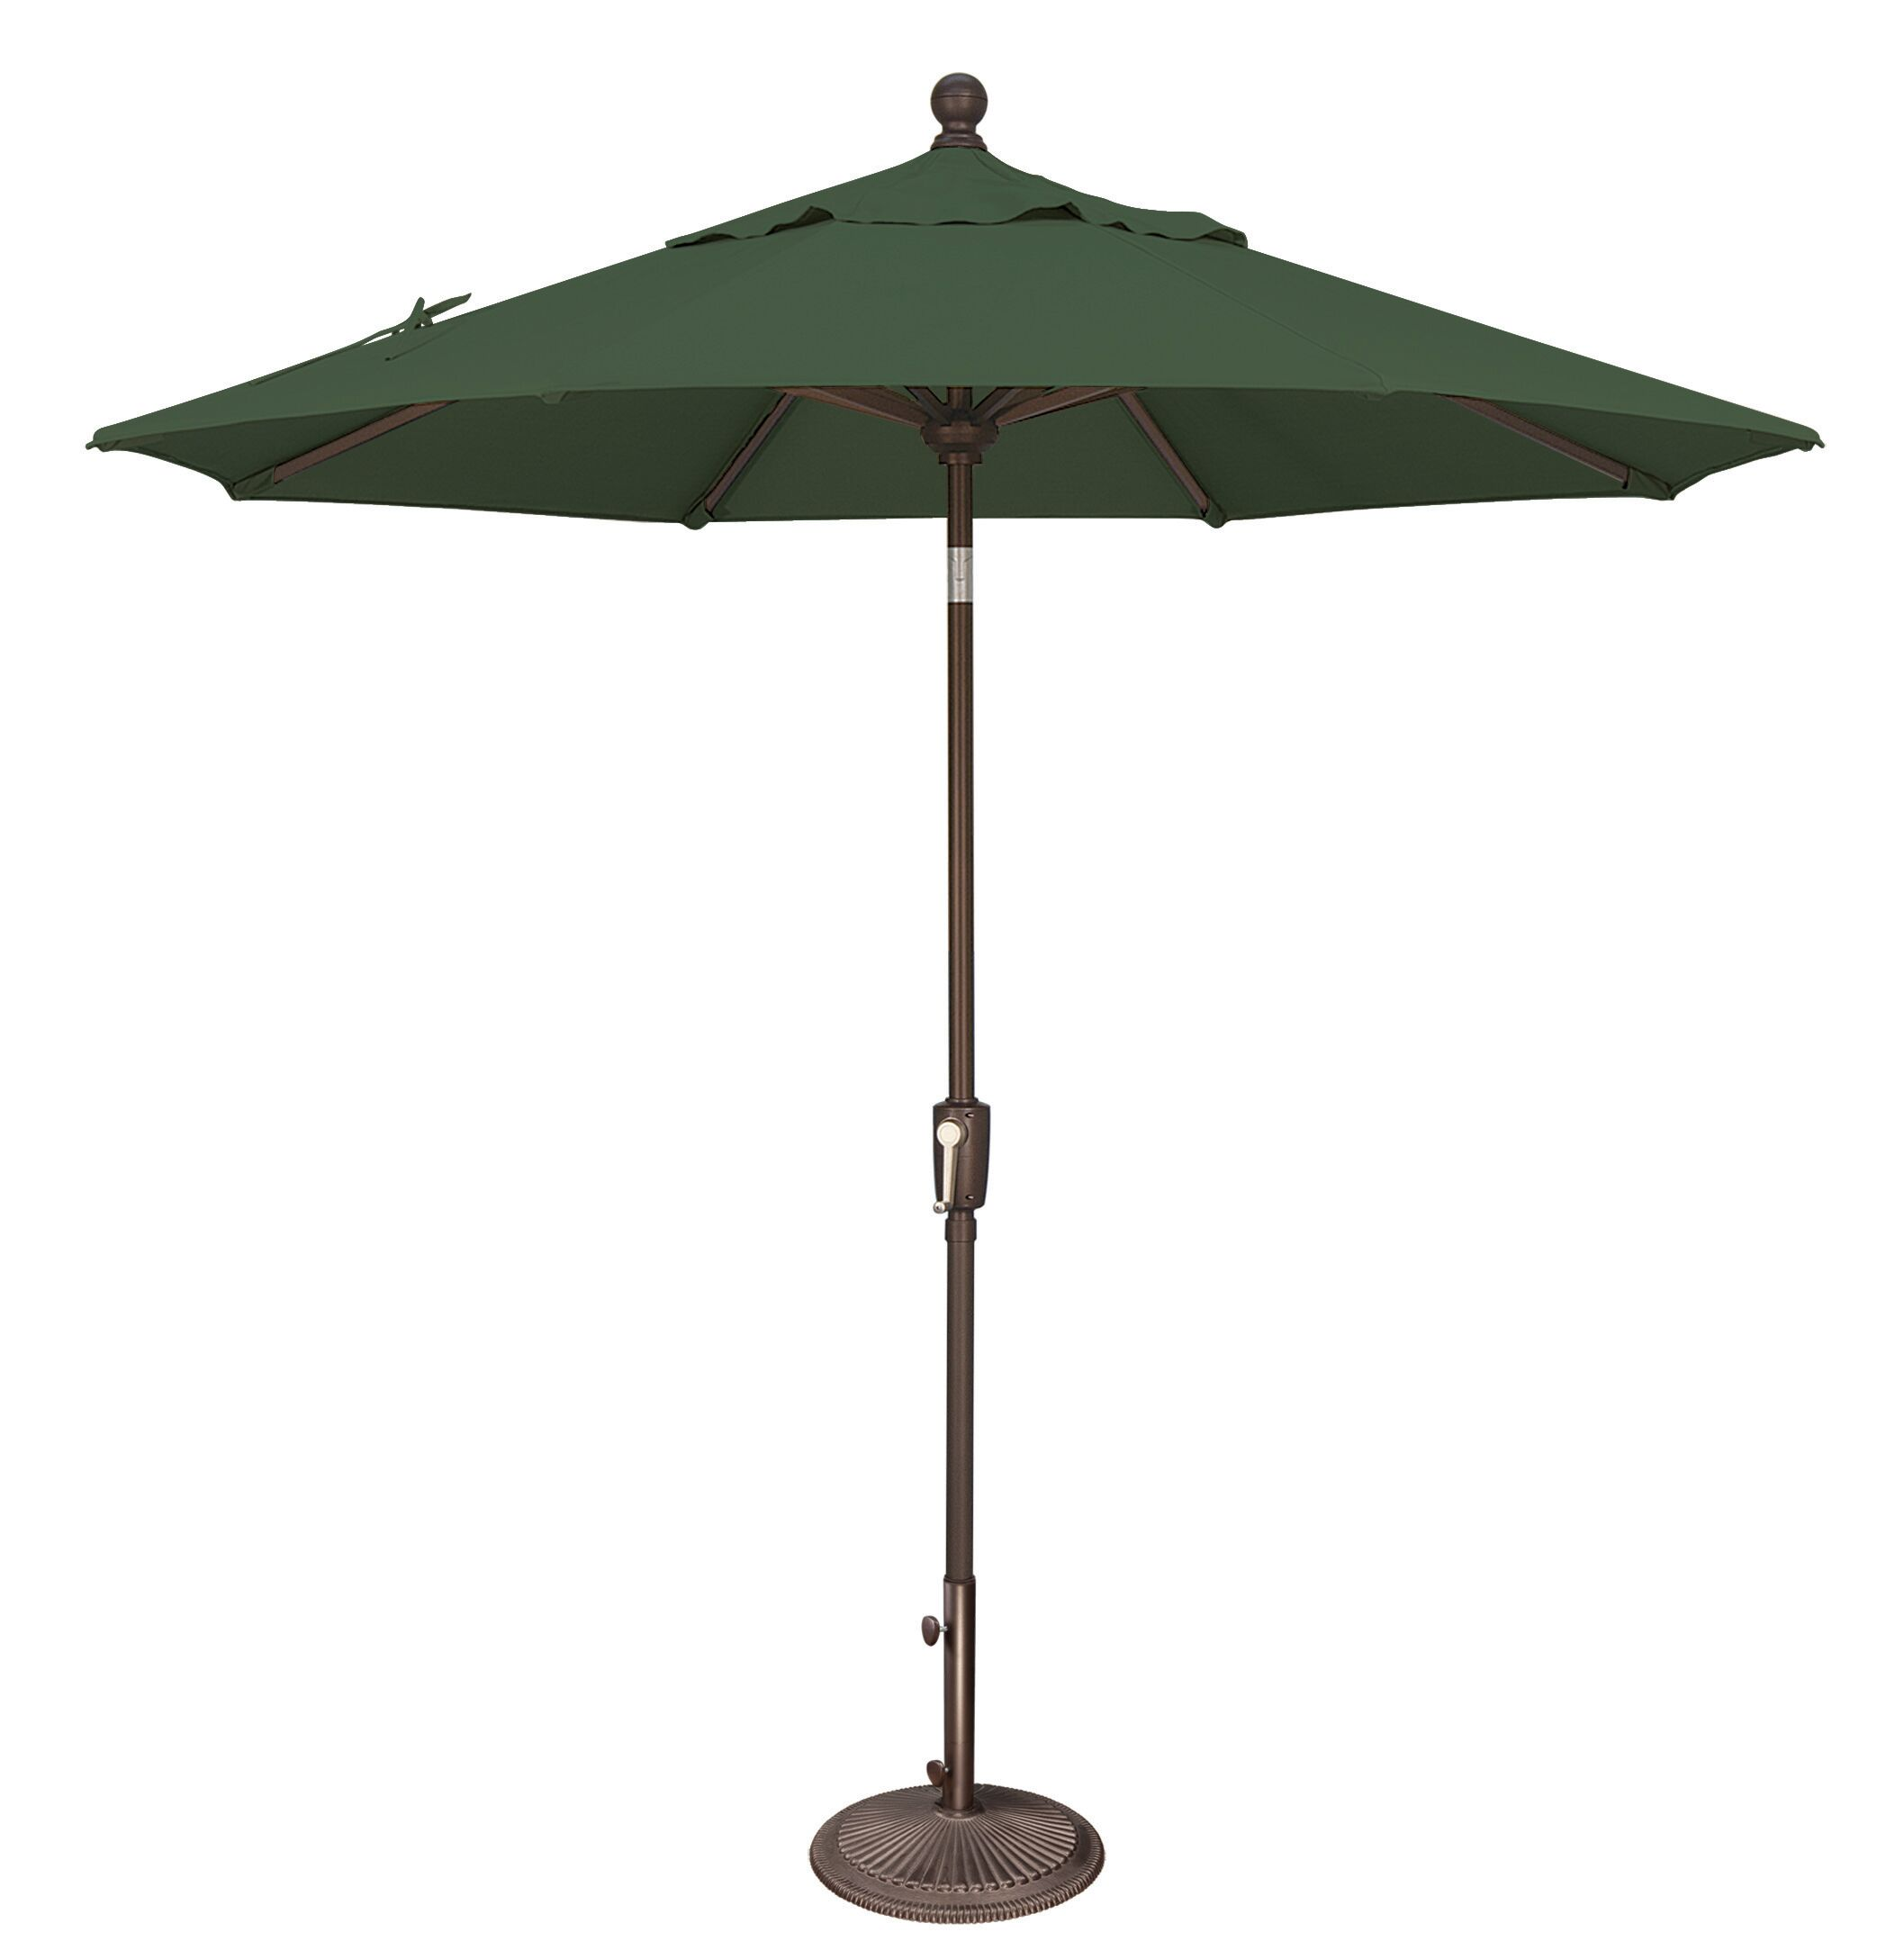 Catalina 7.5' Market Umbrella Fabric: Sunbrella / Forest Green